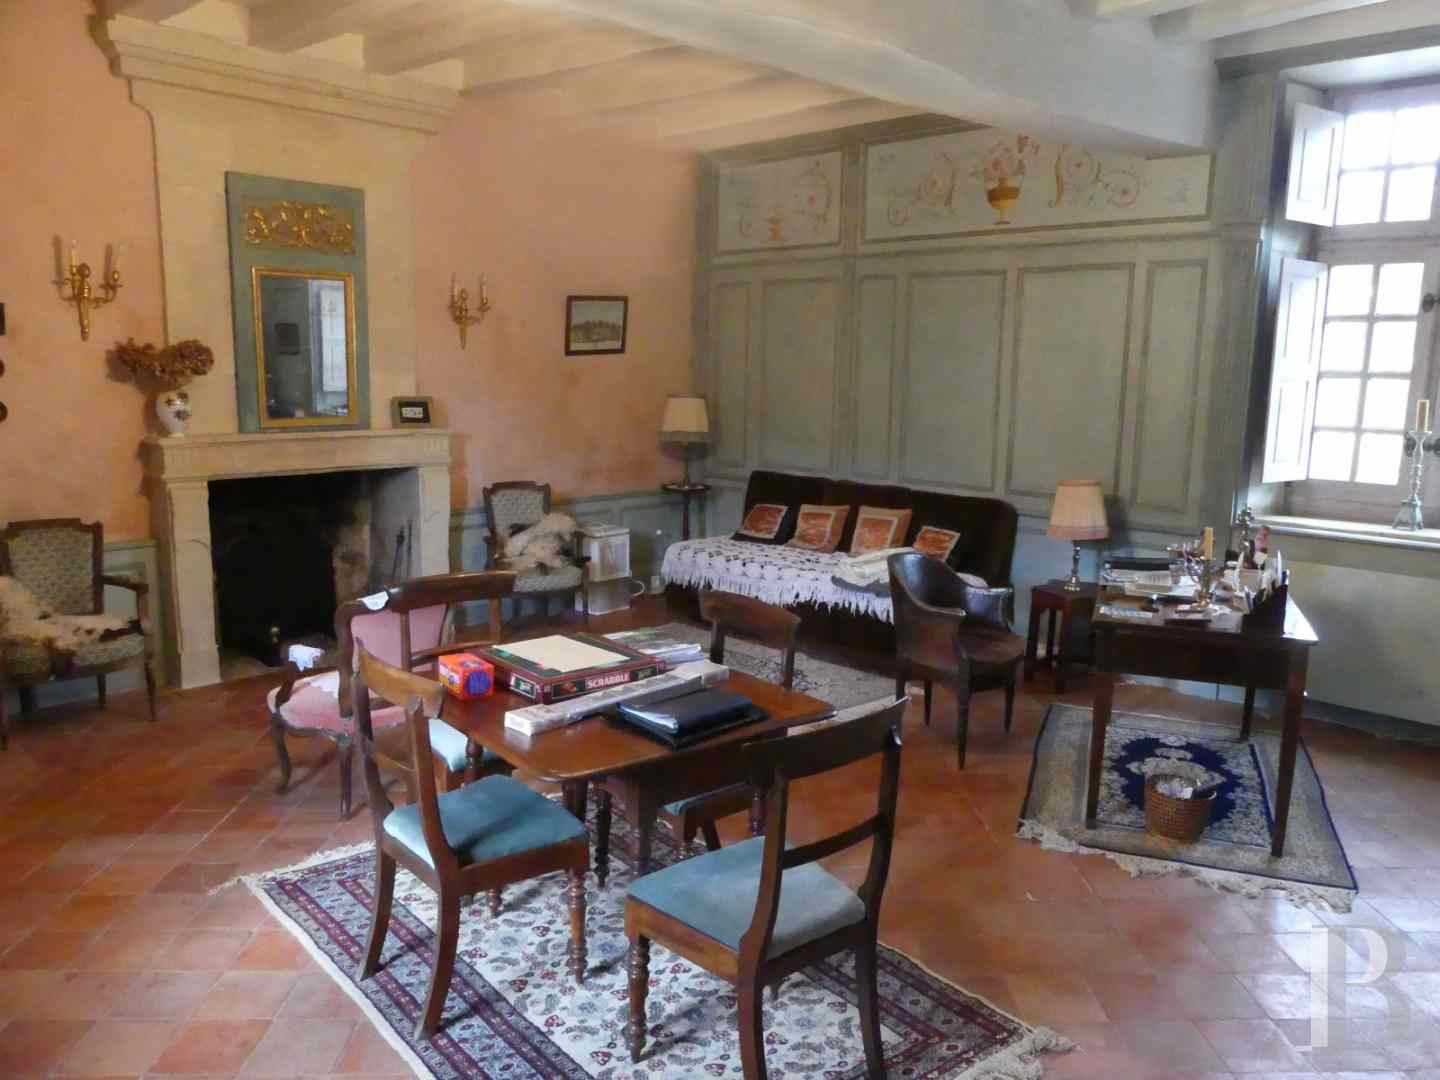 property for sale France poitou charentes residences historic - 9 zoom